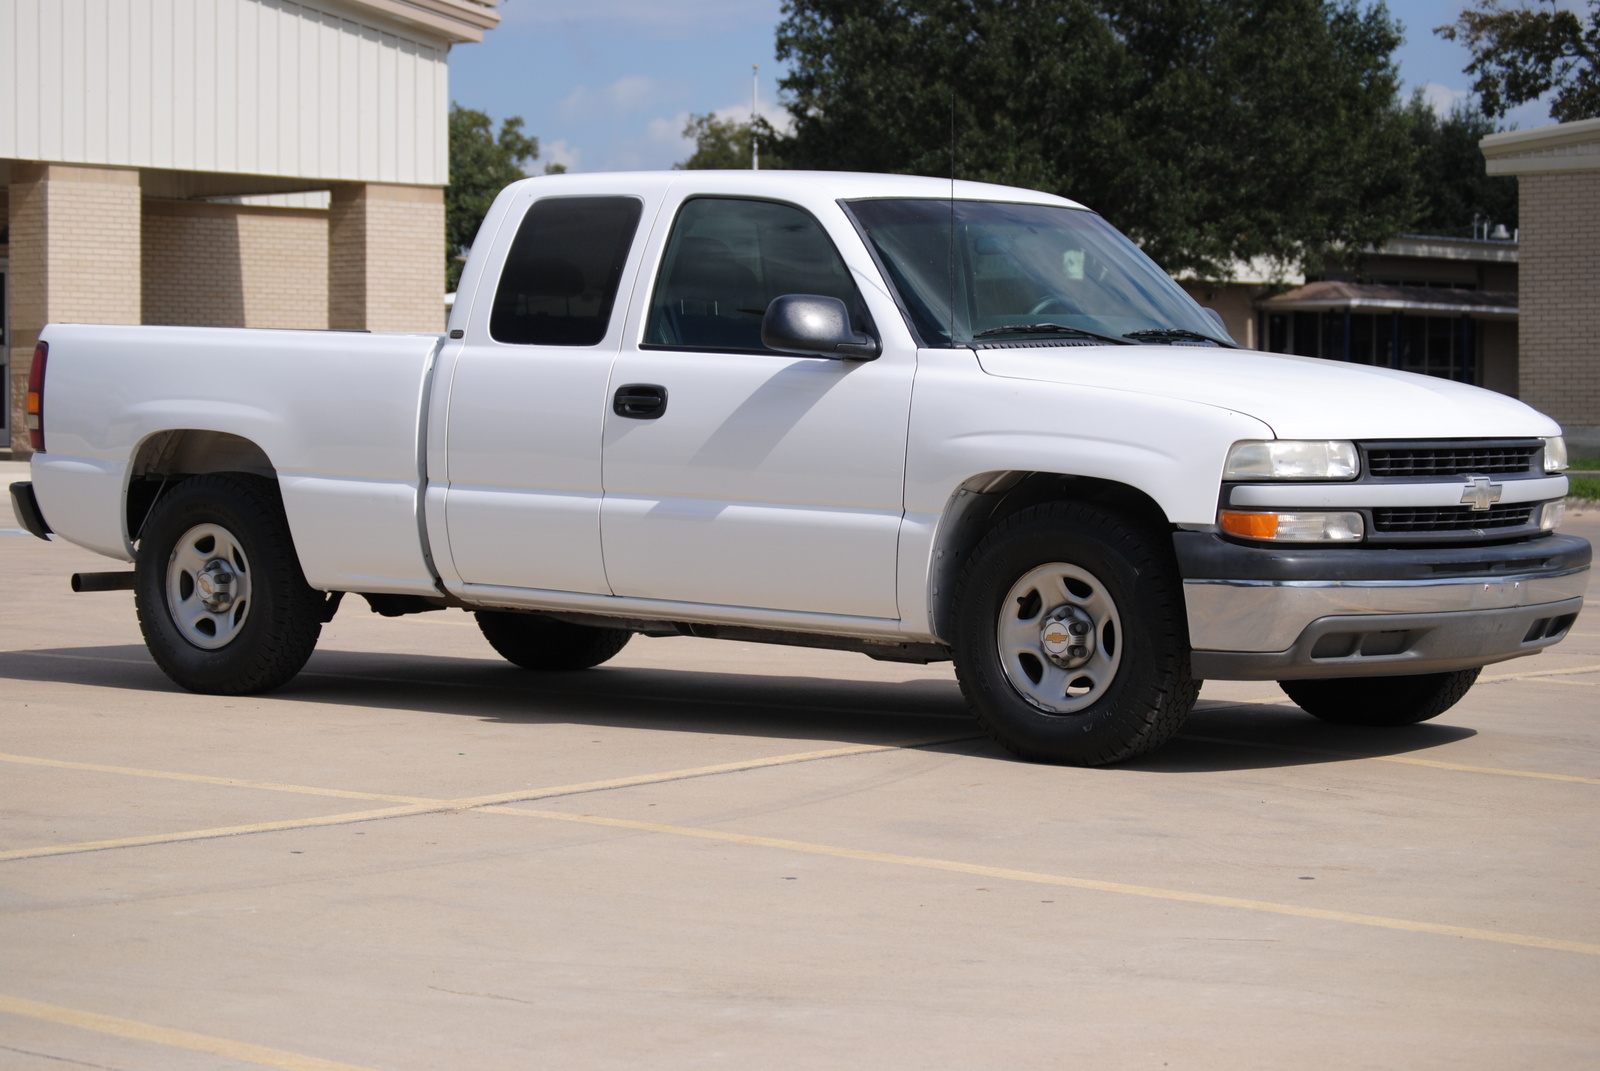 2001 chevrolet silverado 1500 exterior pictures cargurus. Black Bedroom Furniture Sets. Home Design Ideas